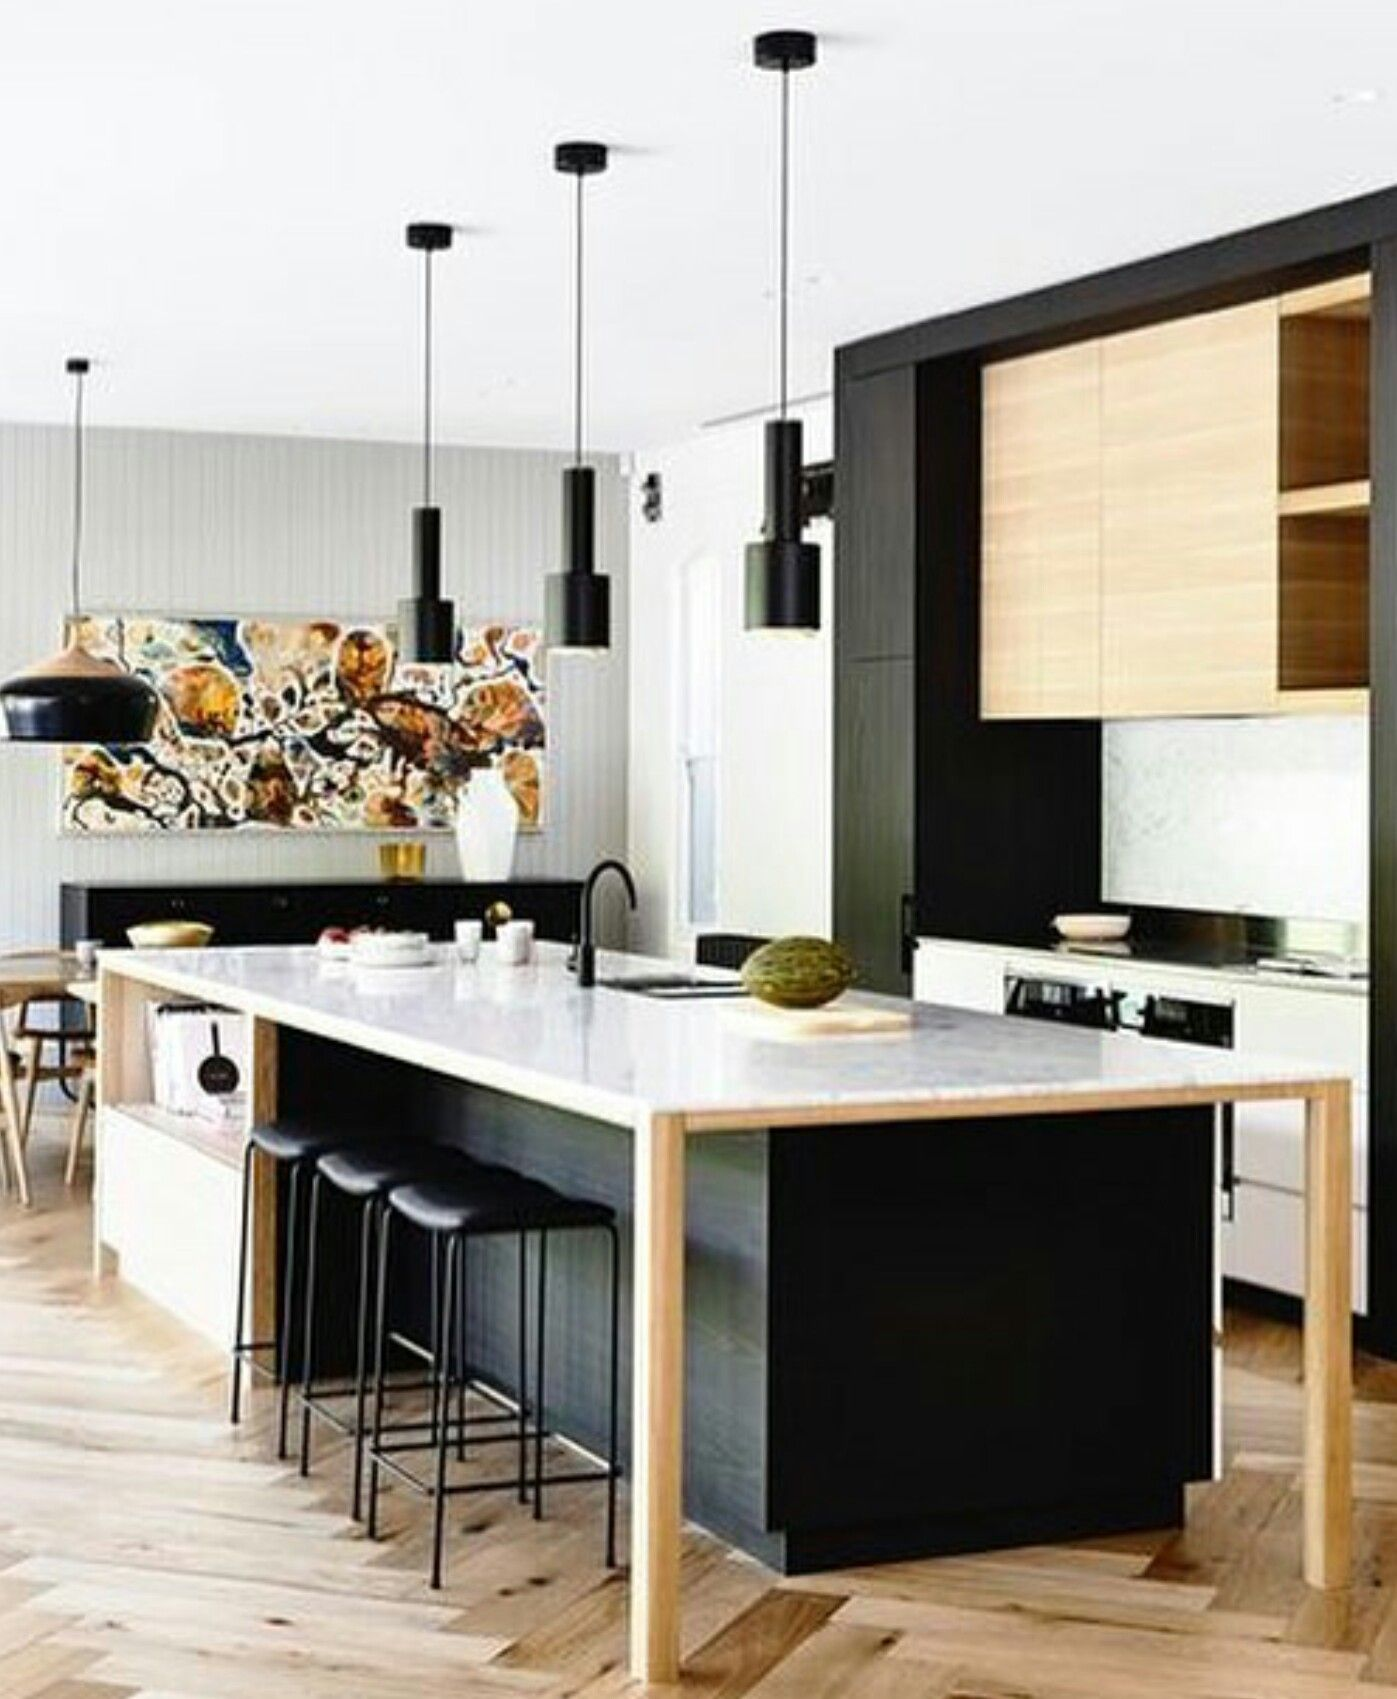 Explore Dark Kitchens, Modern Kitchens, And More